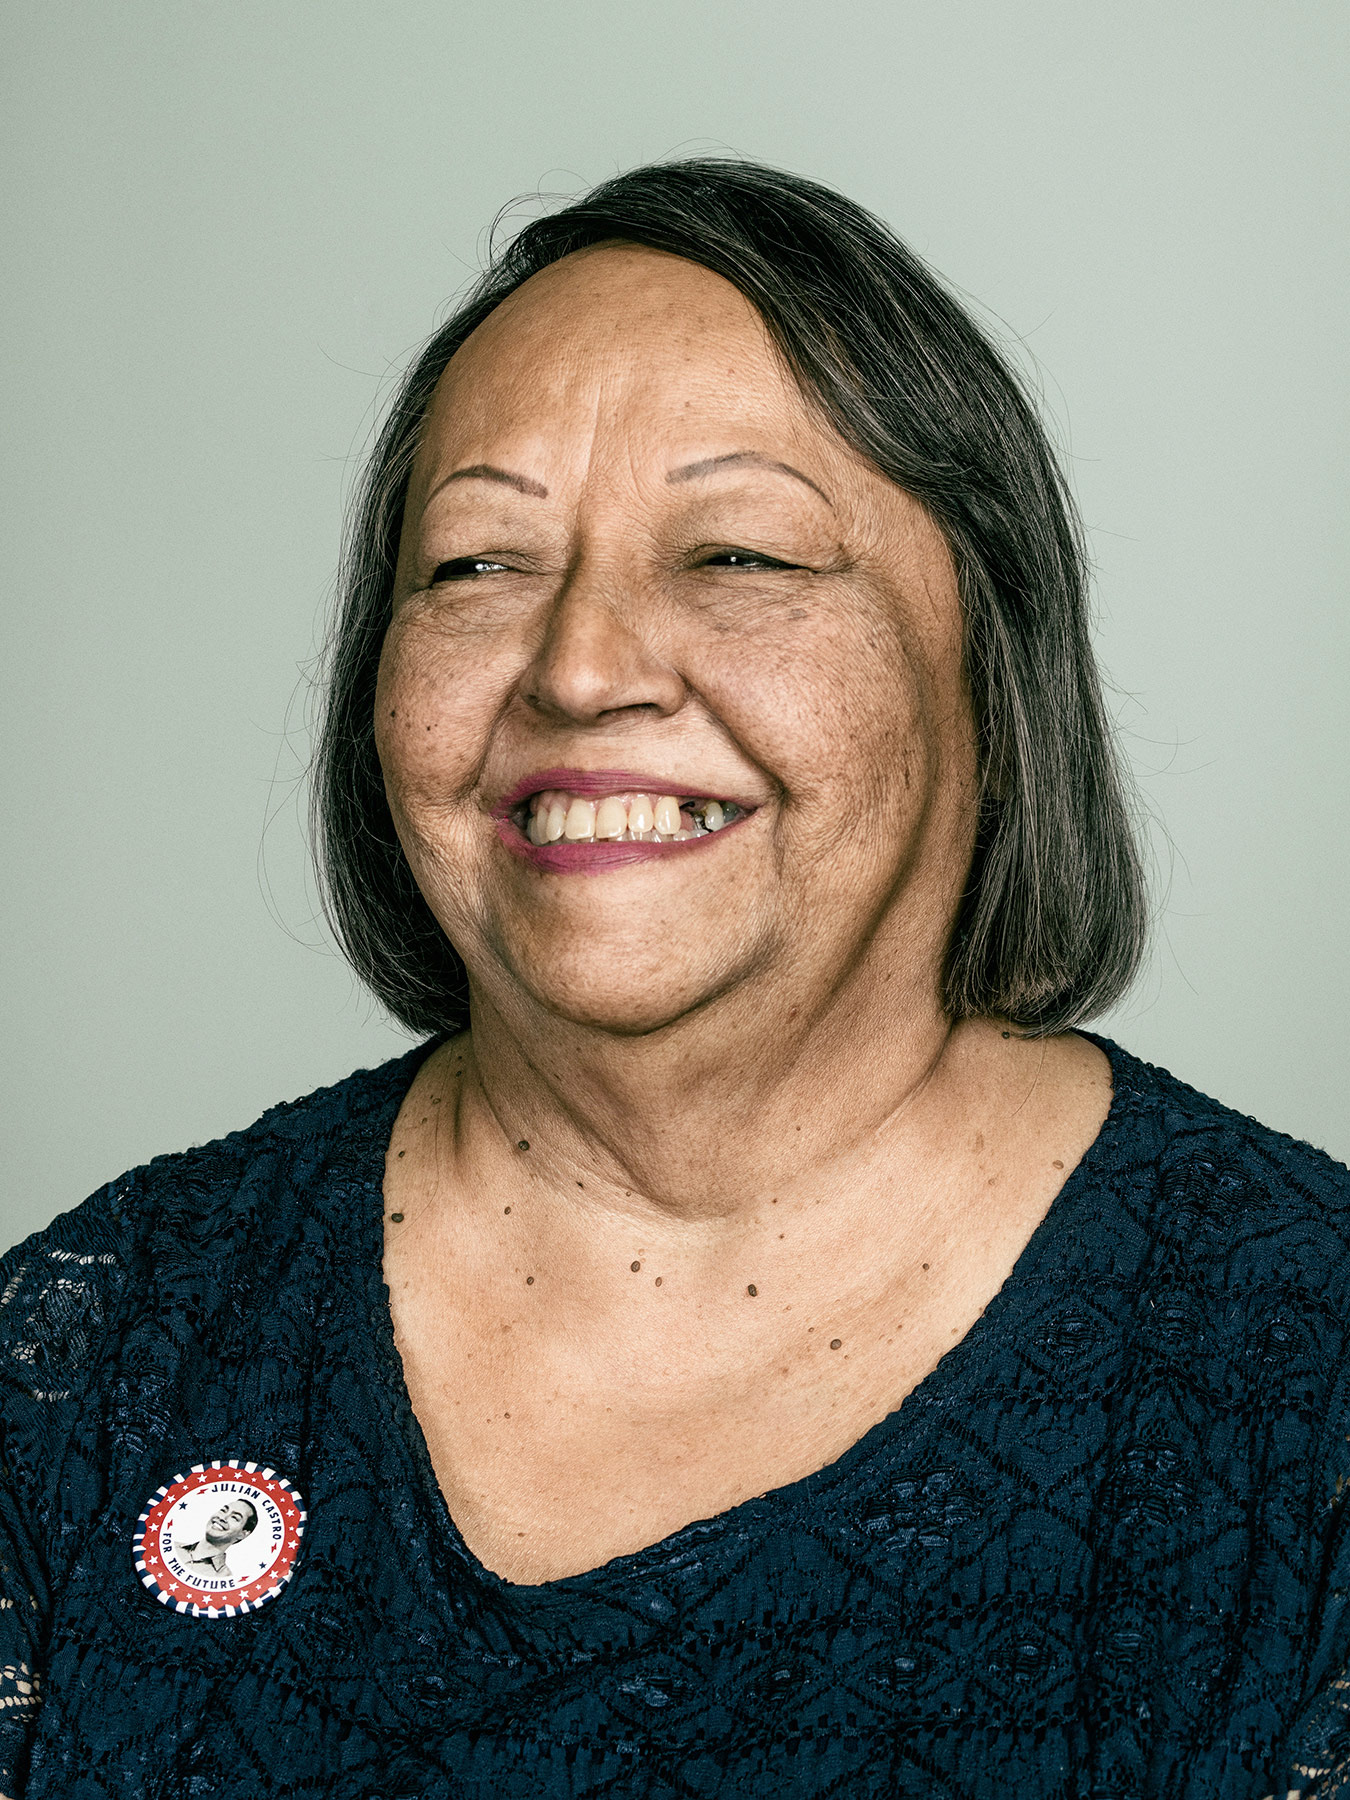 Rosie Castro, mother of Joaquin and Julian Castro, photographed in San Antonio, TX by editorial photographer Josh Huskin.